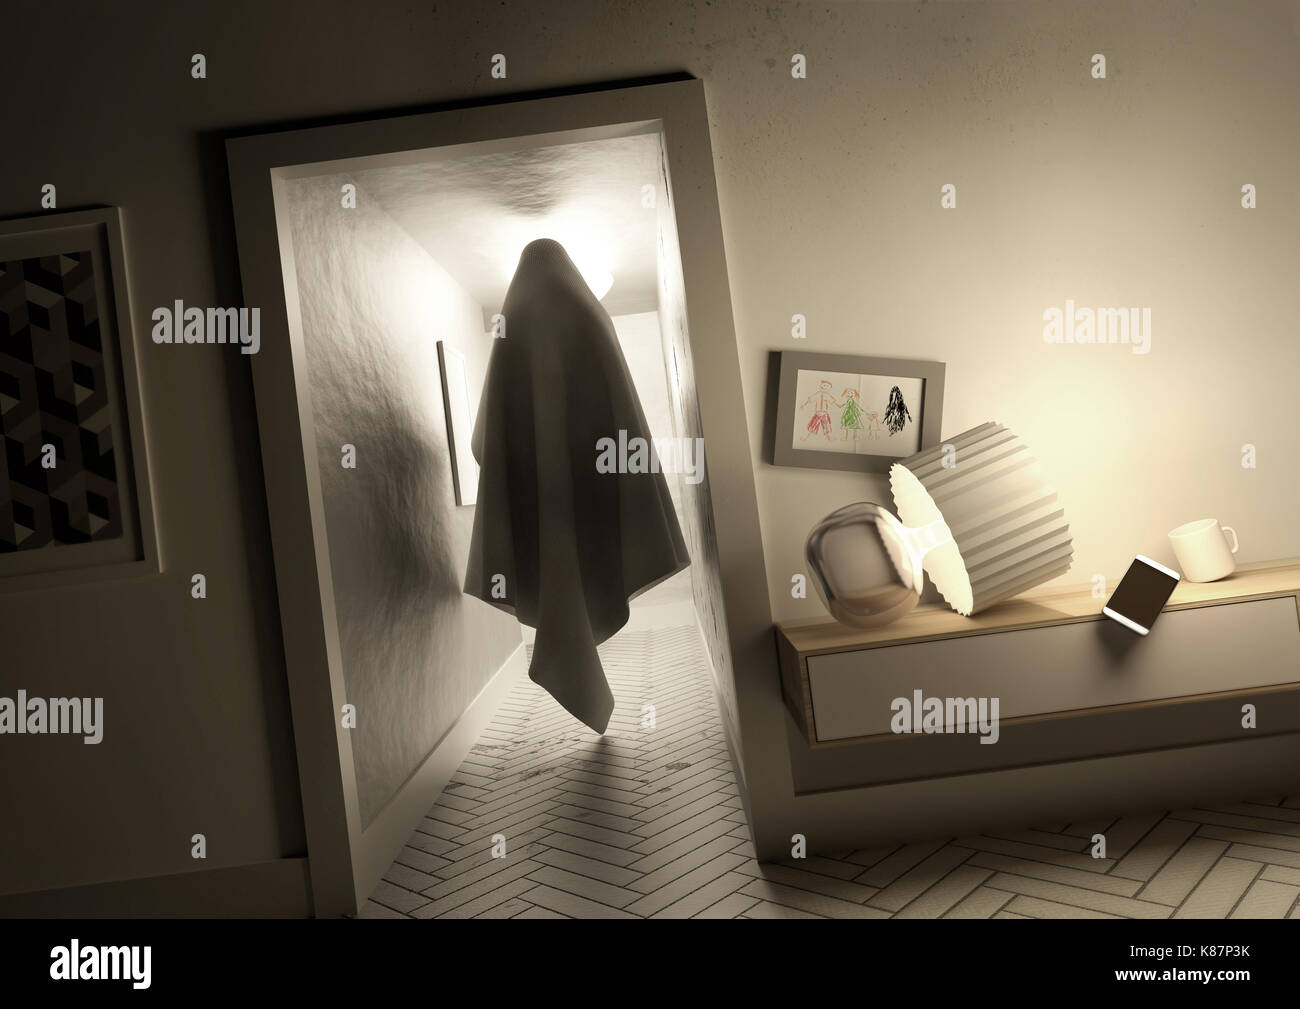 A creepy mysterious ghost spirit moving silently across a hallway inside a family home. 3D illustration concept. - Stock Image